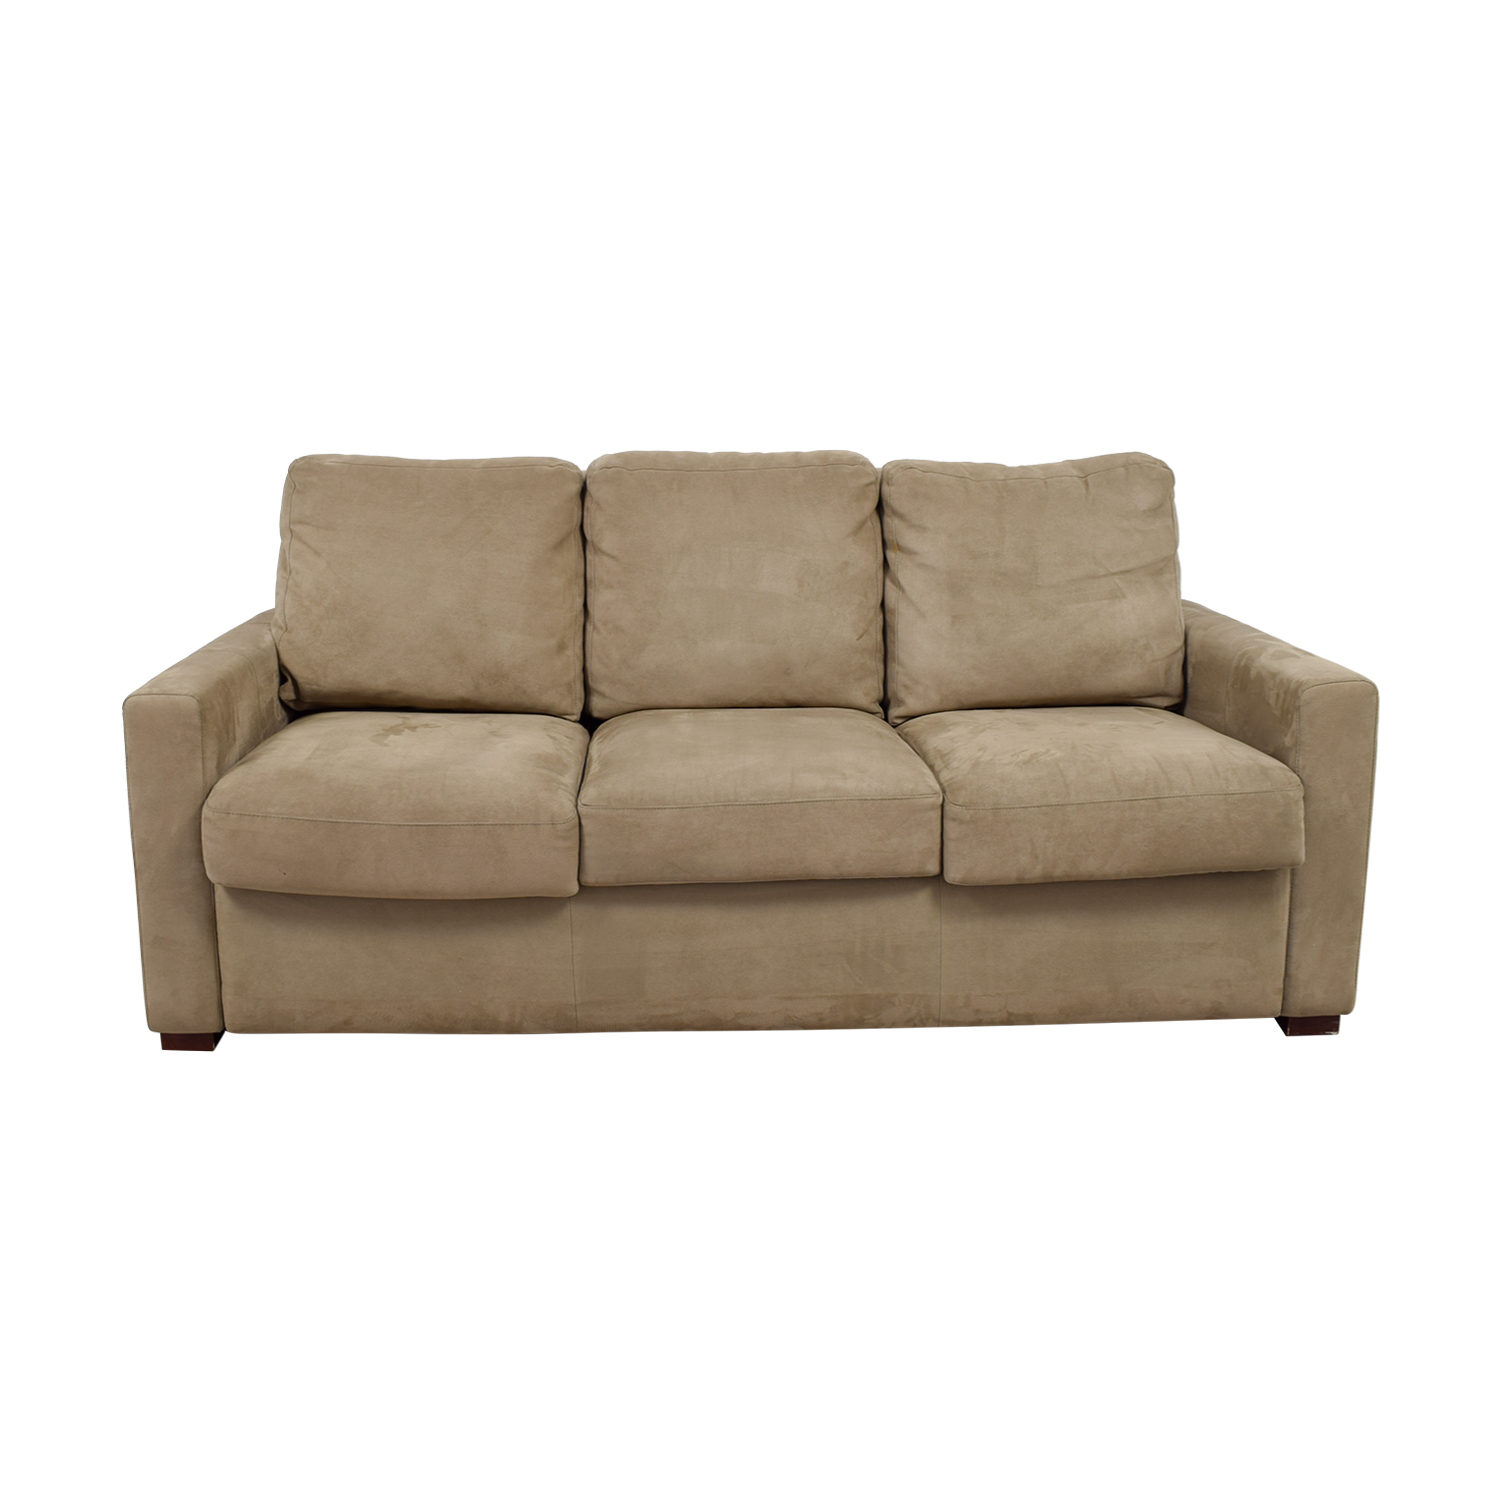 Comfort Sleepers Comfort Sleepers Beige Three Cushion Sofa Classic Sofas